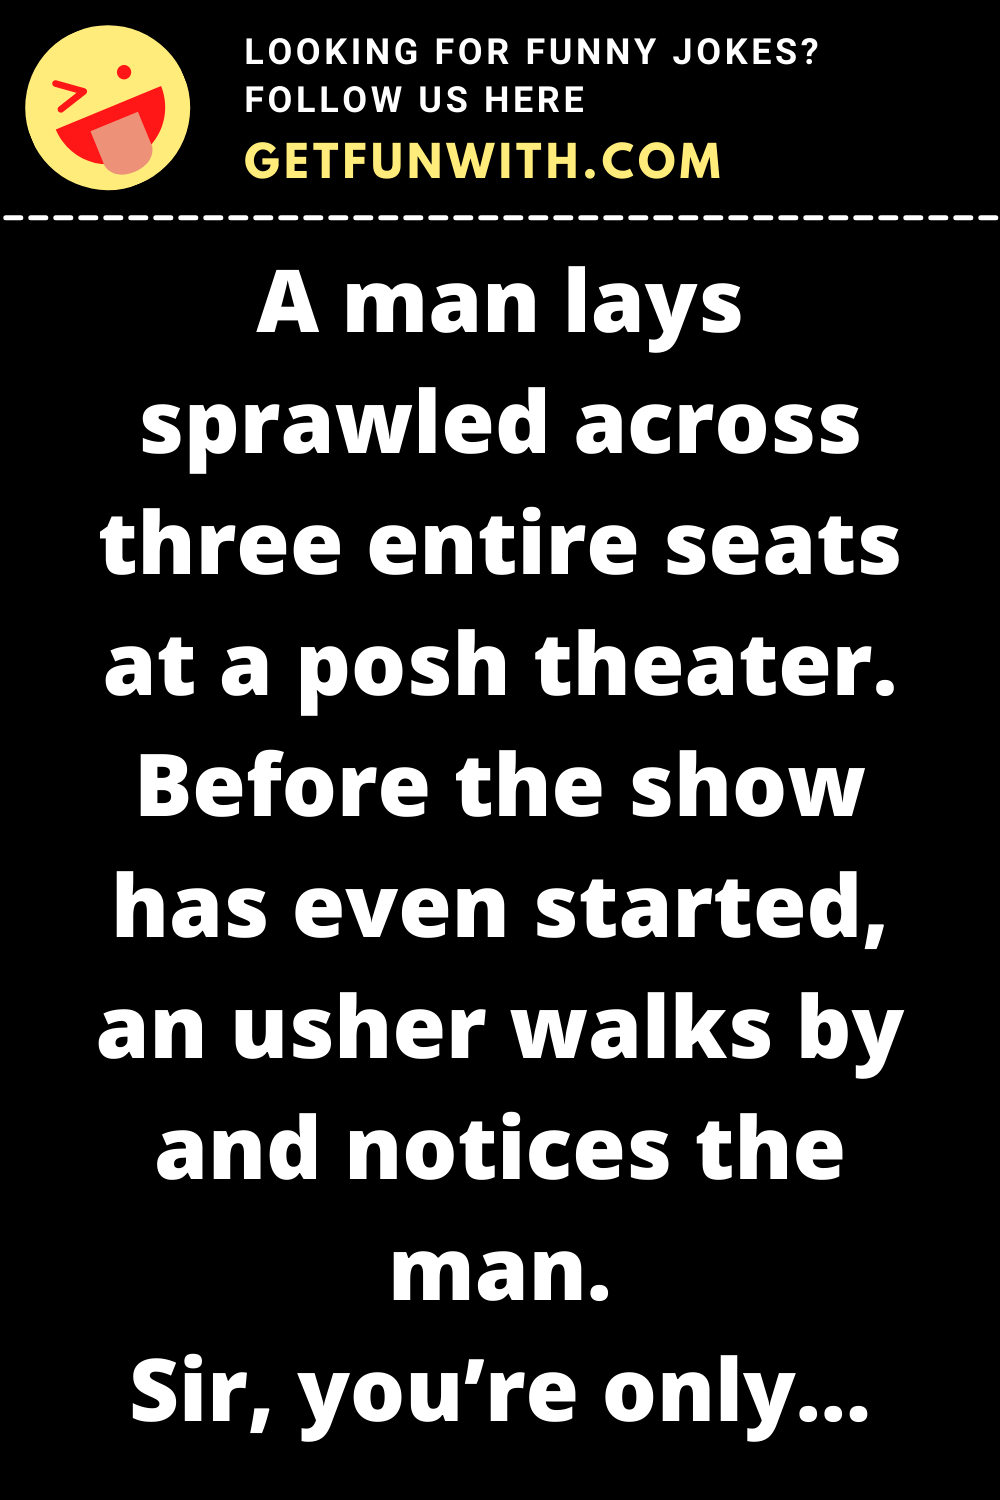 A man lays sprawled across three entire seats at a posh theater. Before the show has even started, an usher walks by and notices the man.